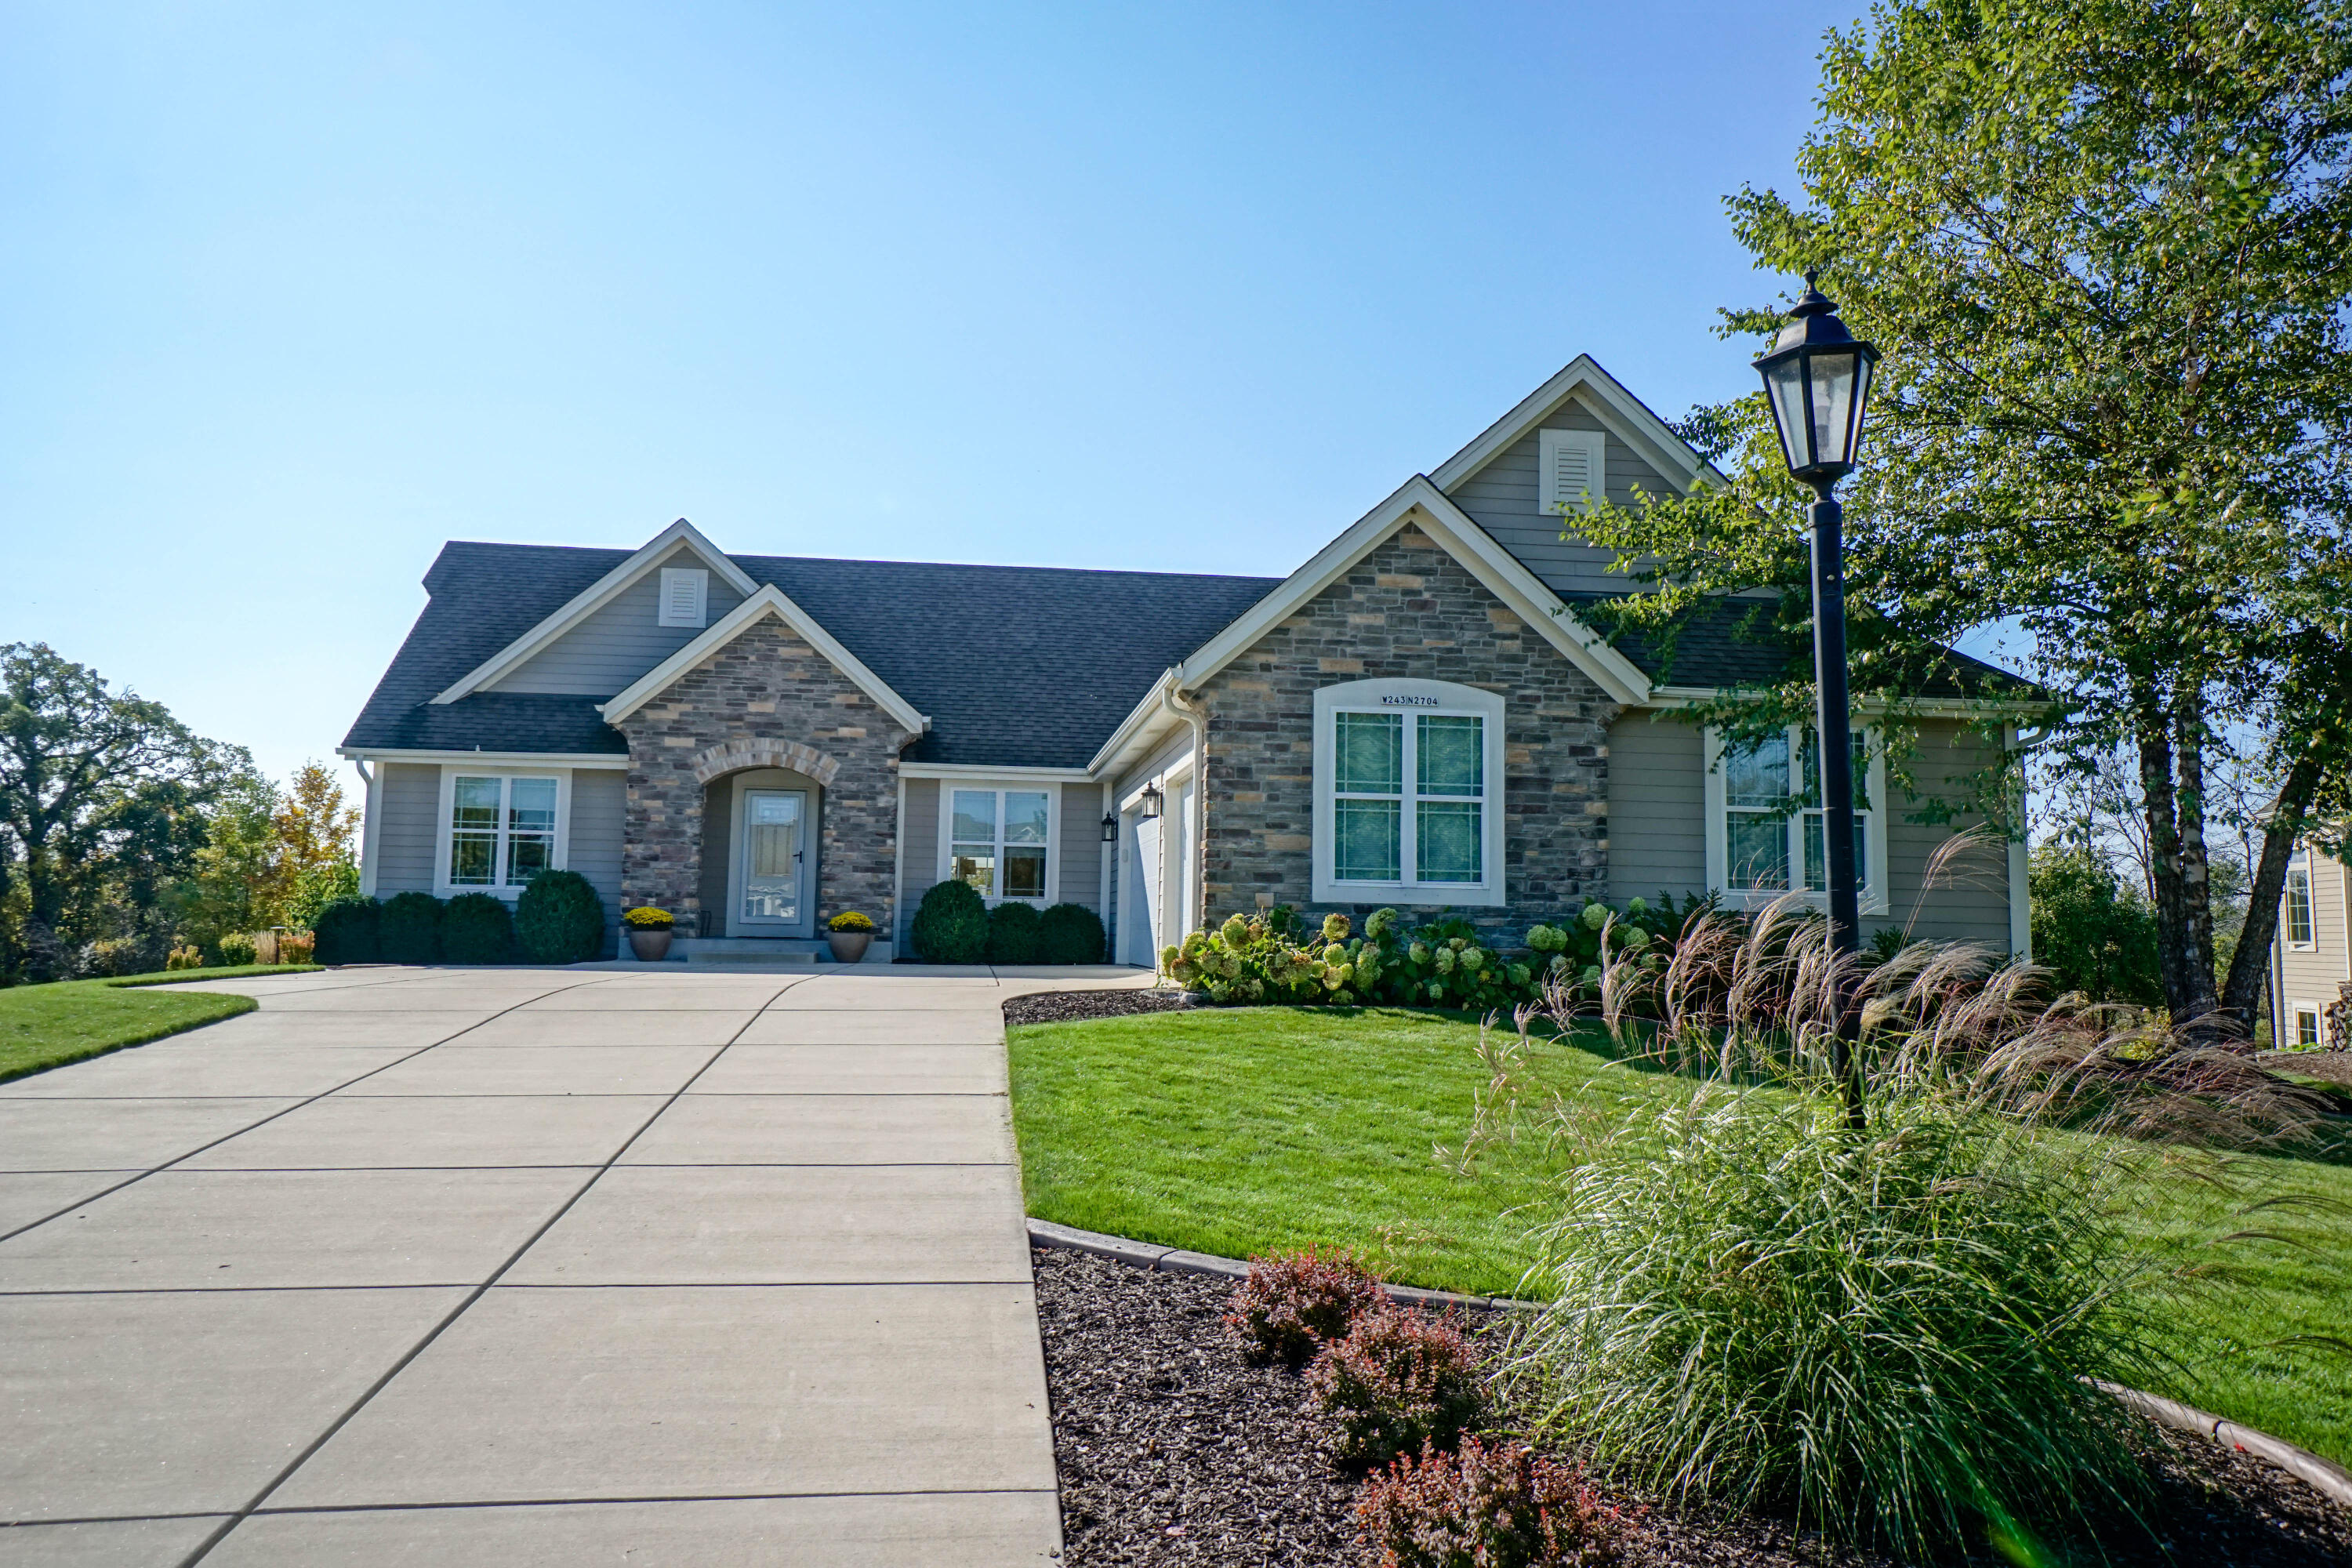 W243N2704 Creekside Ct, Pewaukee, Wisconsin 53072, 5 Bedrooms Bedrooms, 11 Rooms Rooms,3 BathroomsBathrooms,Single-Family,For Sale,Creekside Ct,1766990